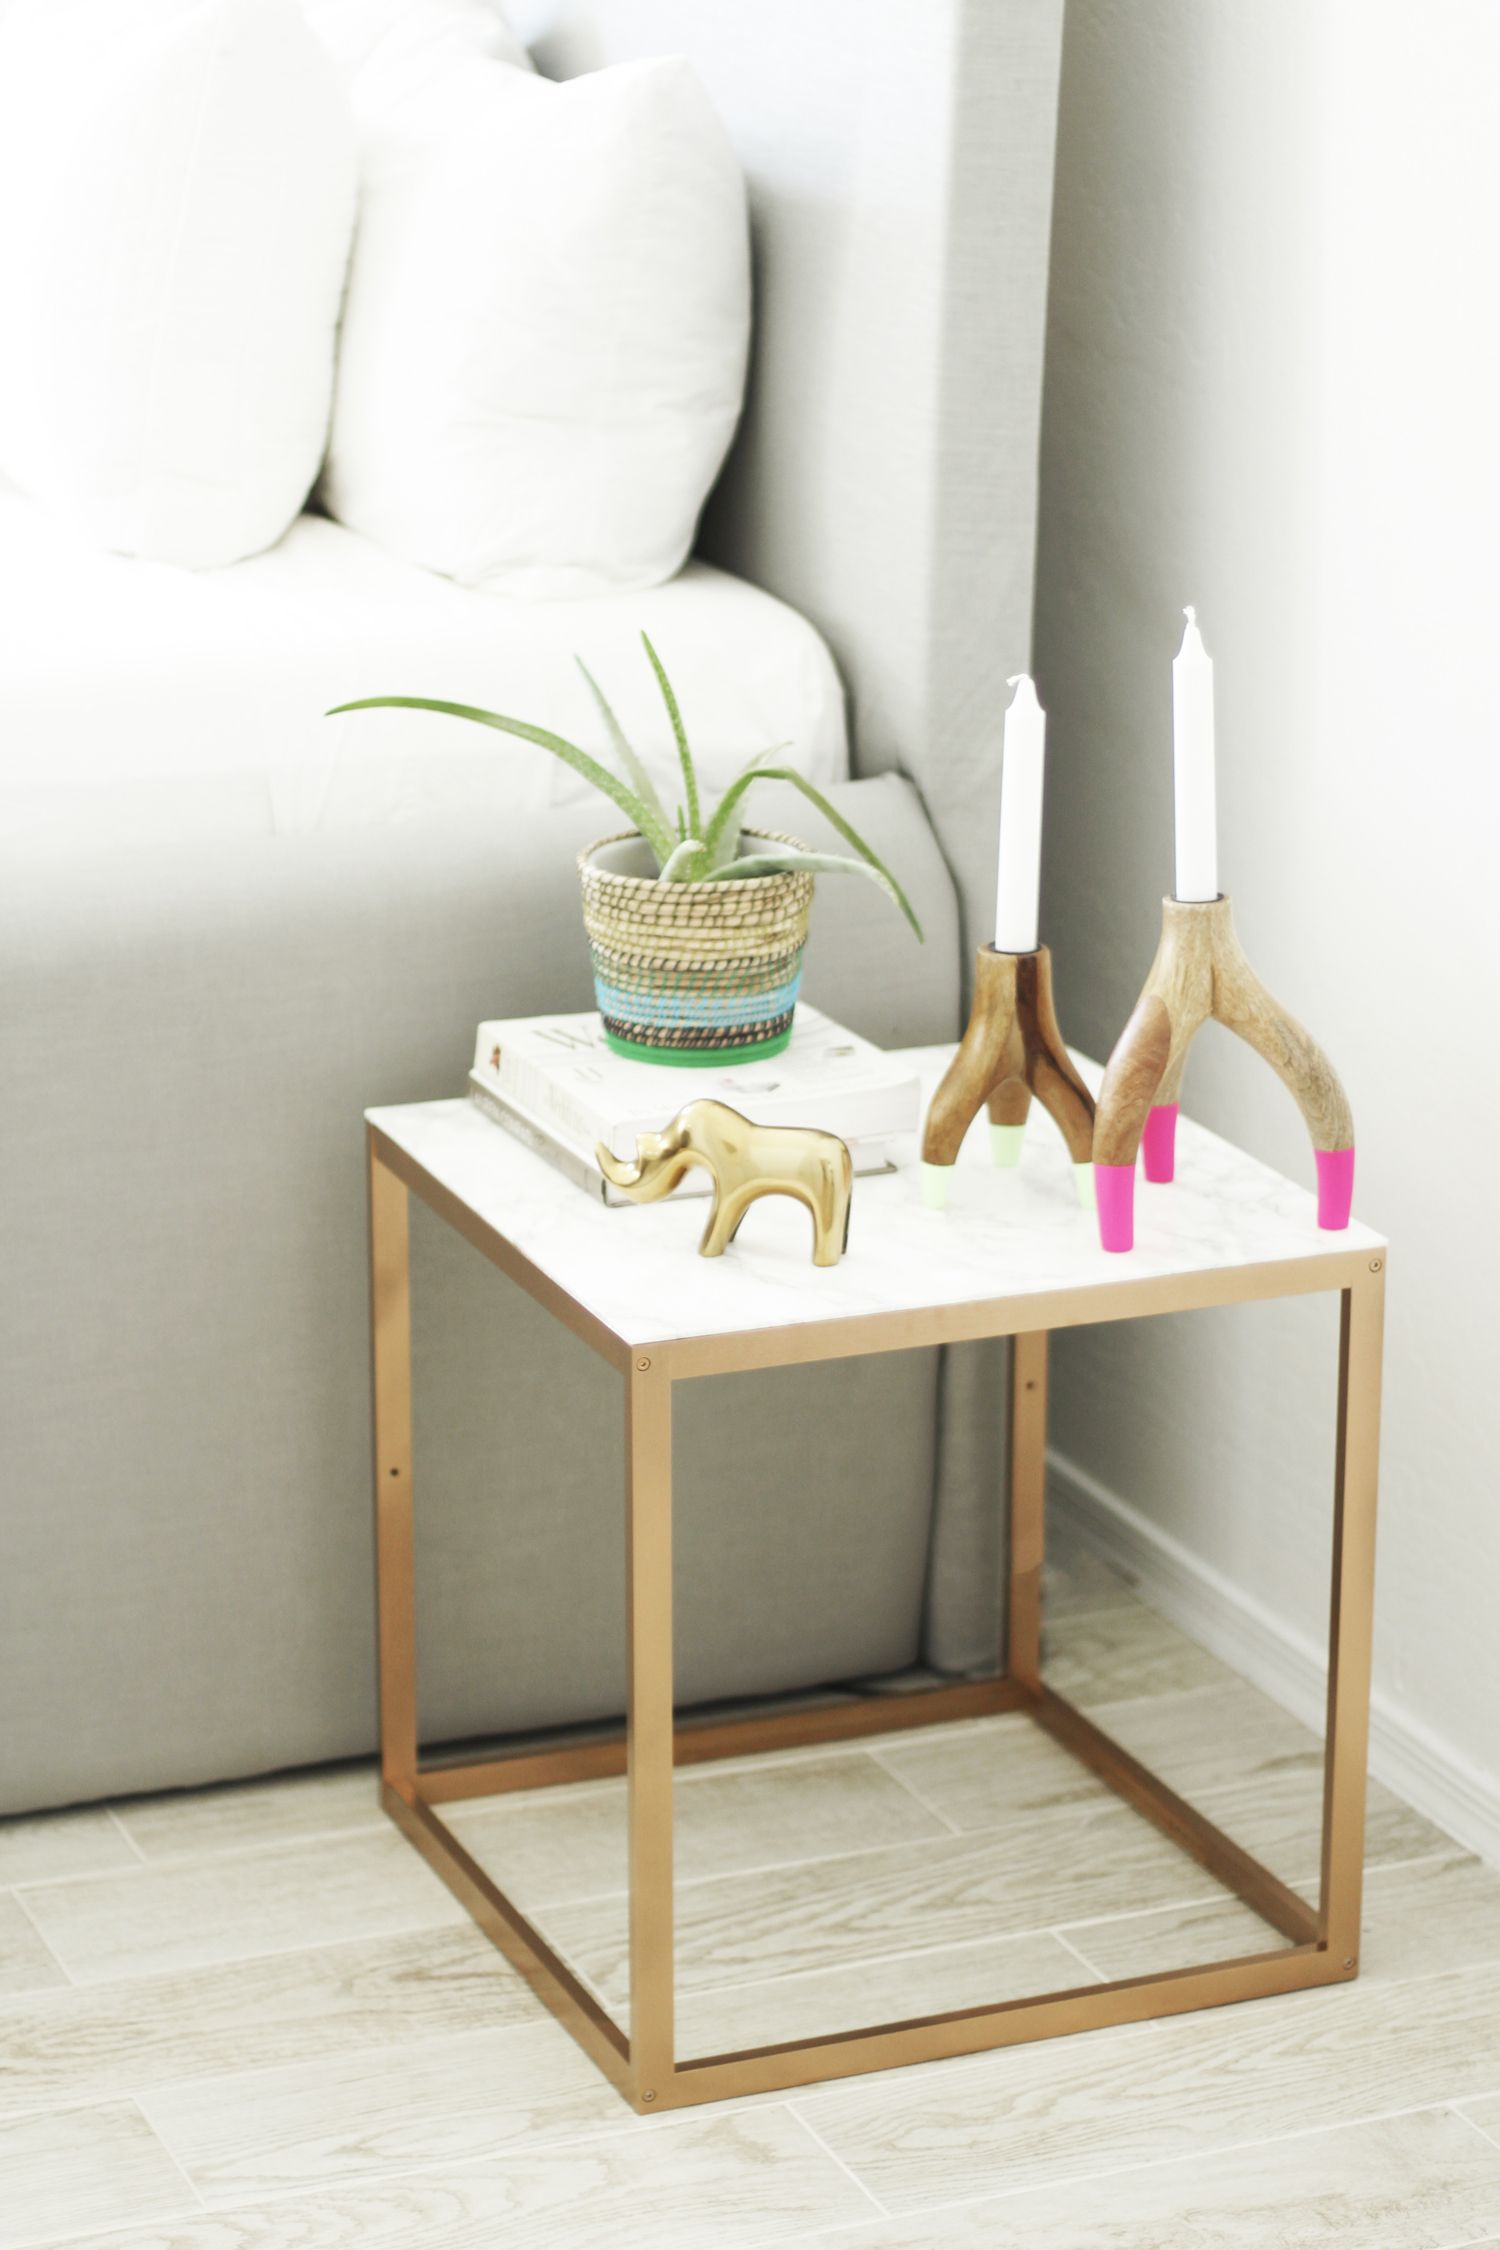 Ikea Hack Nightstand Four Ways Kristi Murphy Diy Blog Diy Marble Table Ikea Diy Ikea Table Hack